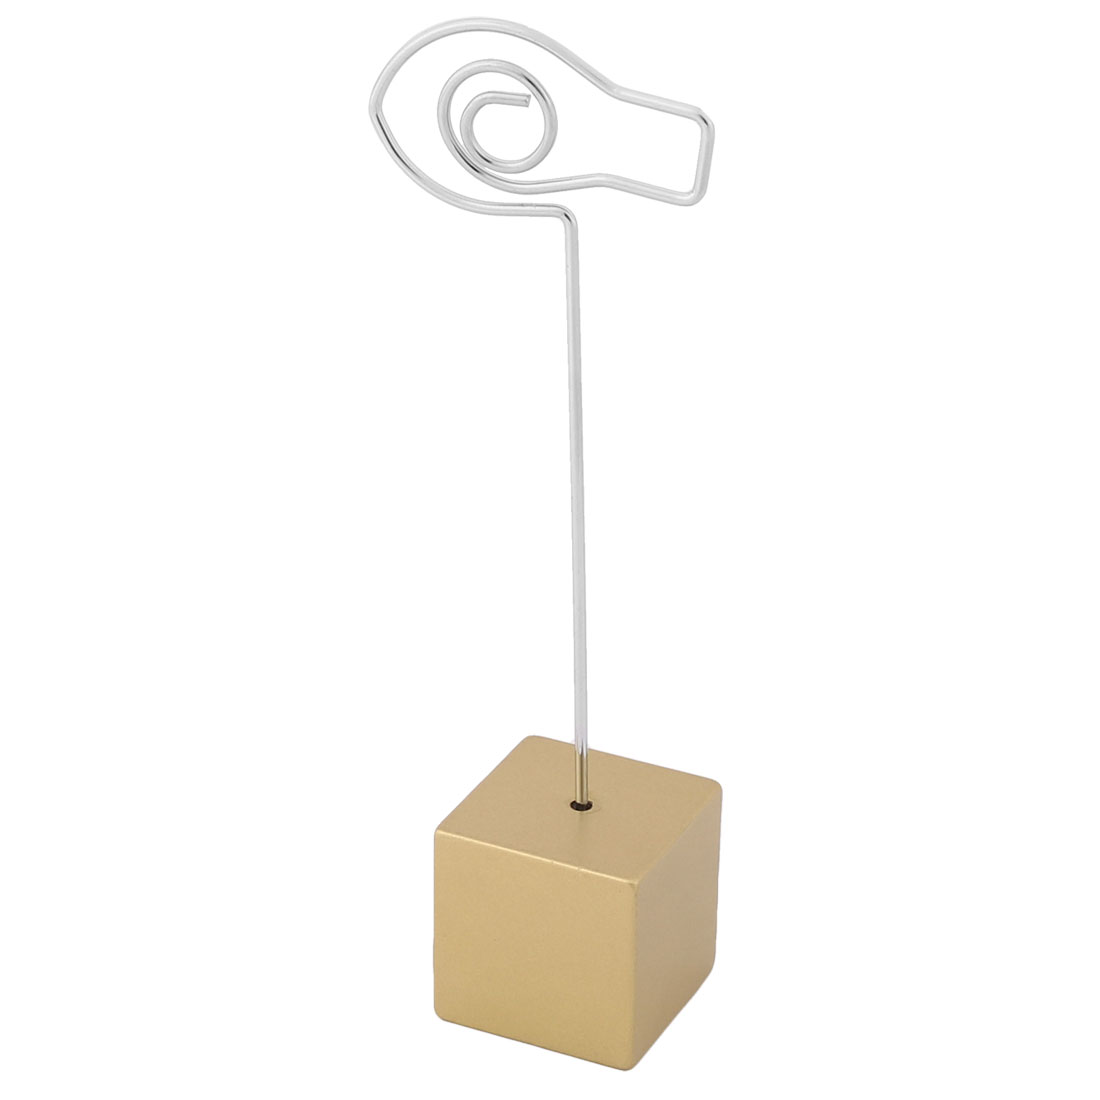 Office Resin Cube Shaped Base Fish Design Clamp Note Paper Memo Clip Gold Tone